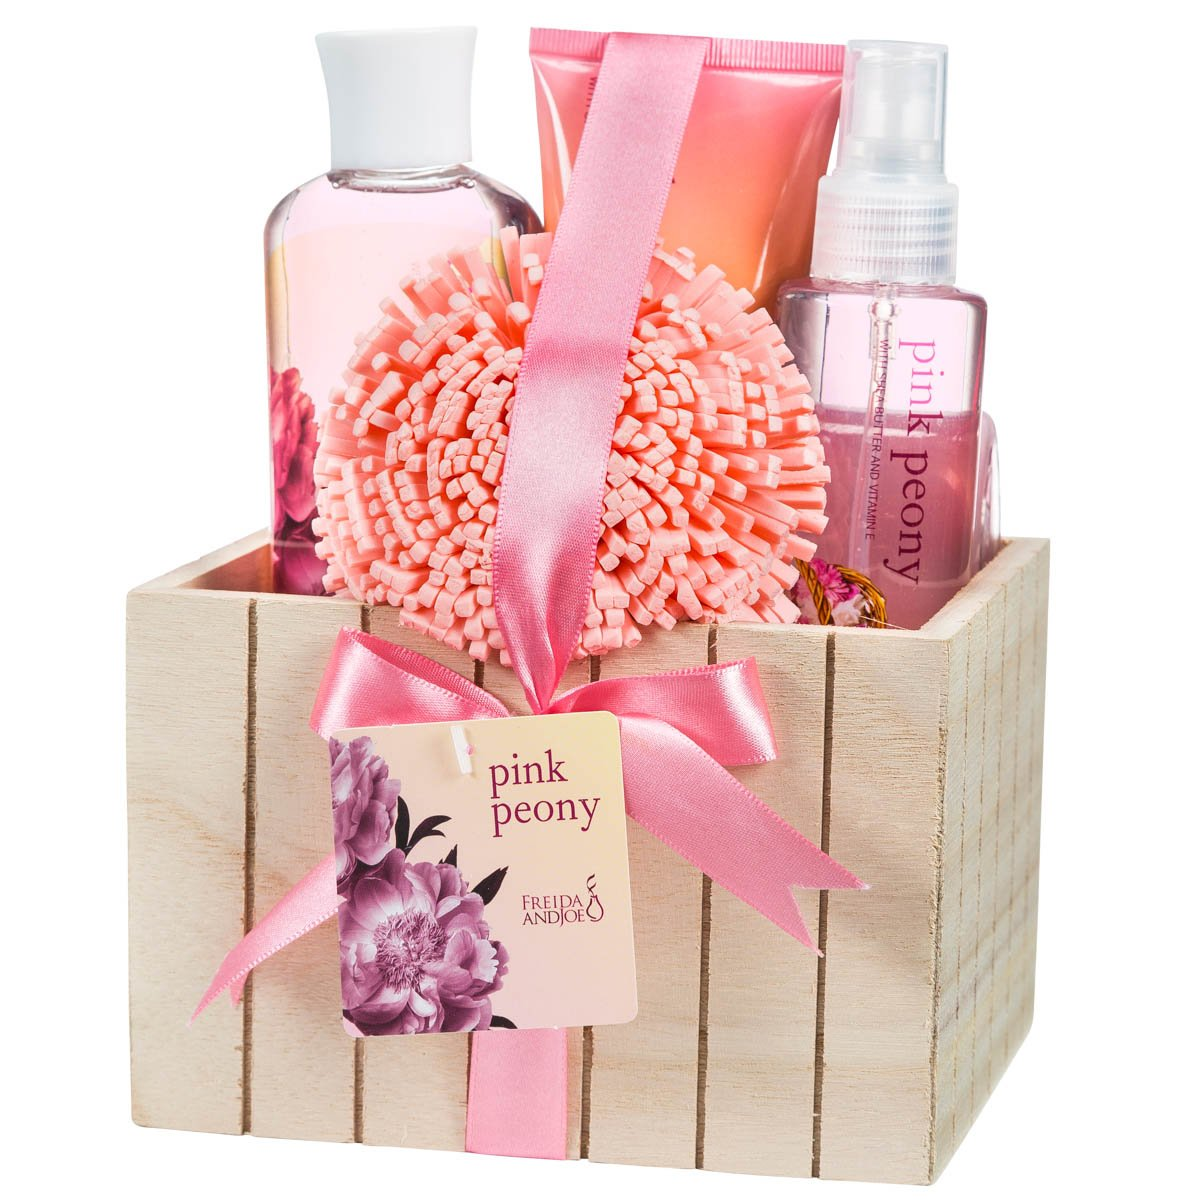 Amazon.com: Motheru0027s Day Gift Basket Relaxing Spring Pink Peony Fragrance  Aromatherapy Home Spa Bath Gift Set With Skincare Body Lotion, Shower Gel,  ...